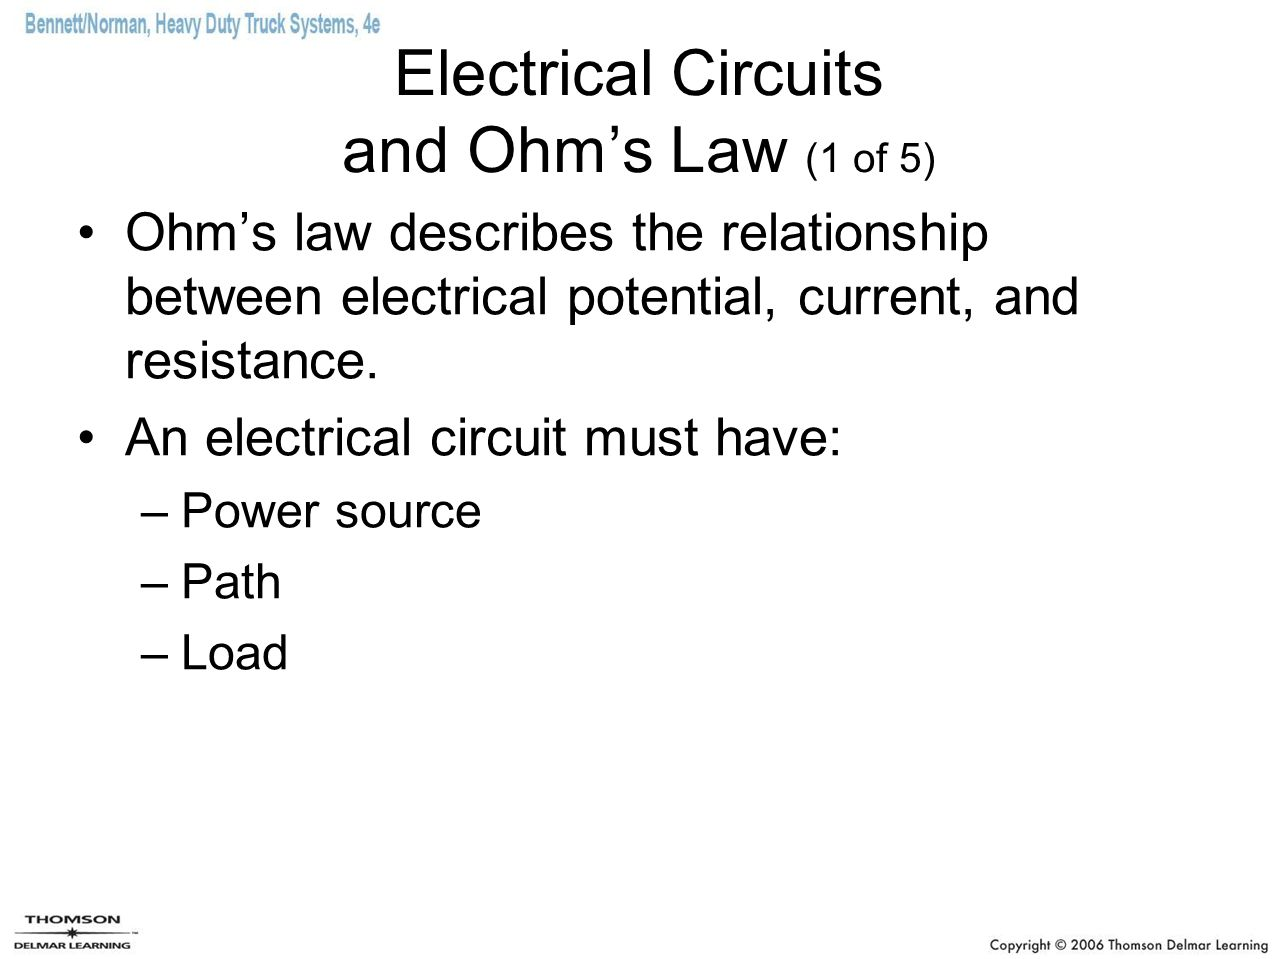 Electrical Circuits and Ohm's Law (1 of 5)